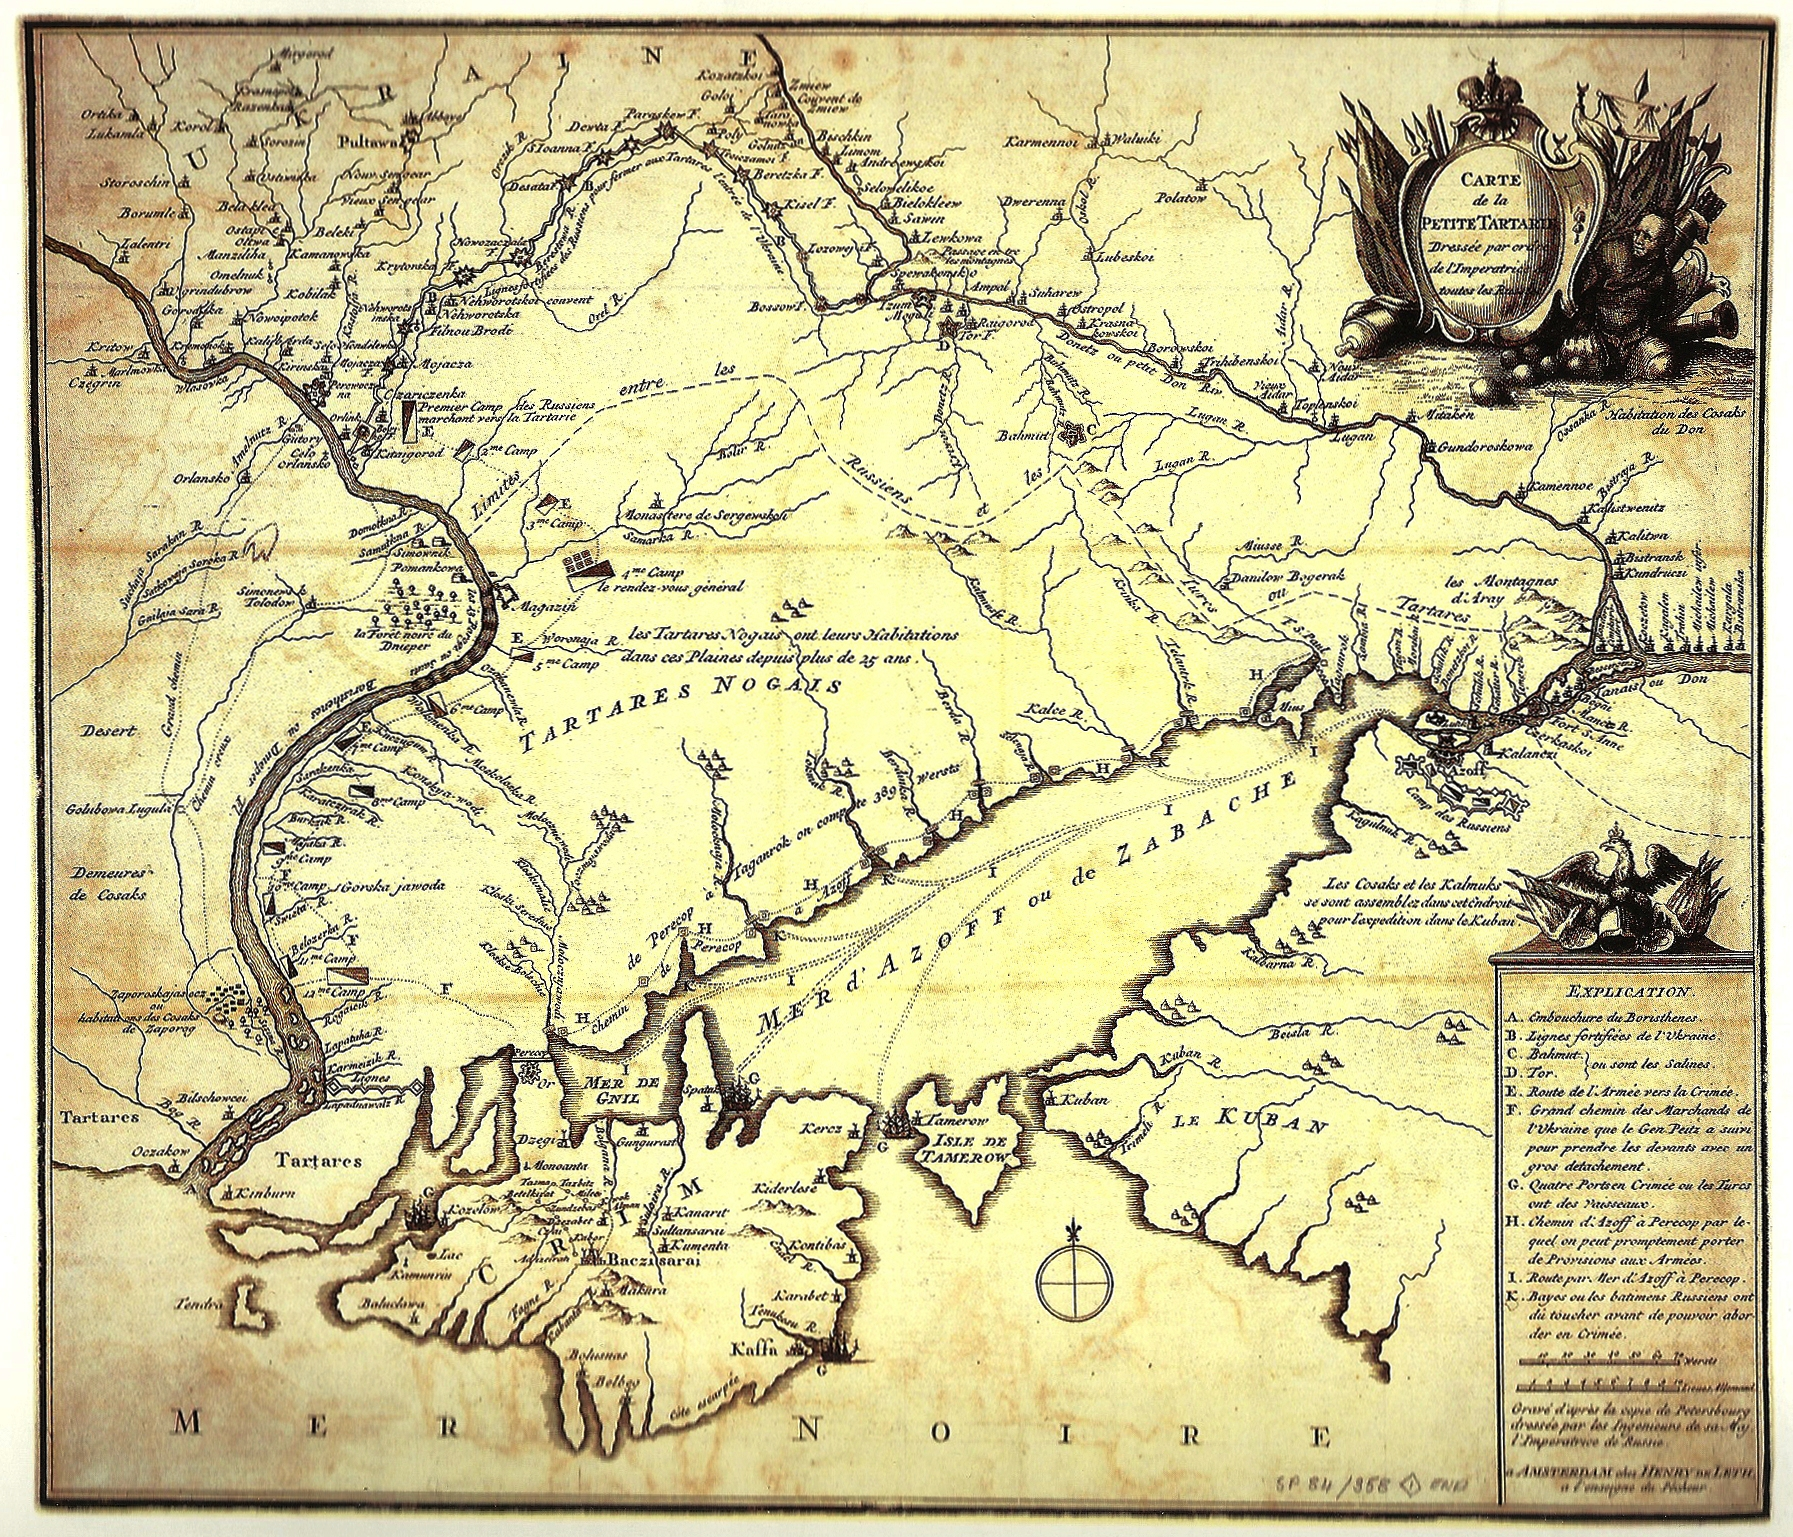 the crimean khanate The territory of crimea, previously controlled by the crimean khanate, was annexed by the russian empire on 19 april [os 8 april] 1783 the period before the annexation was marked by russian interference in crimean affairs, a series of revolts by crimean tatars, and ottoman ambivalence.